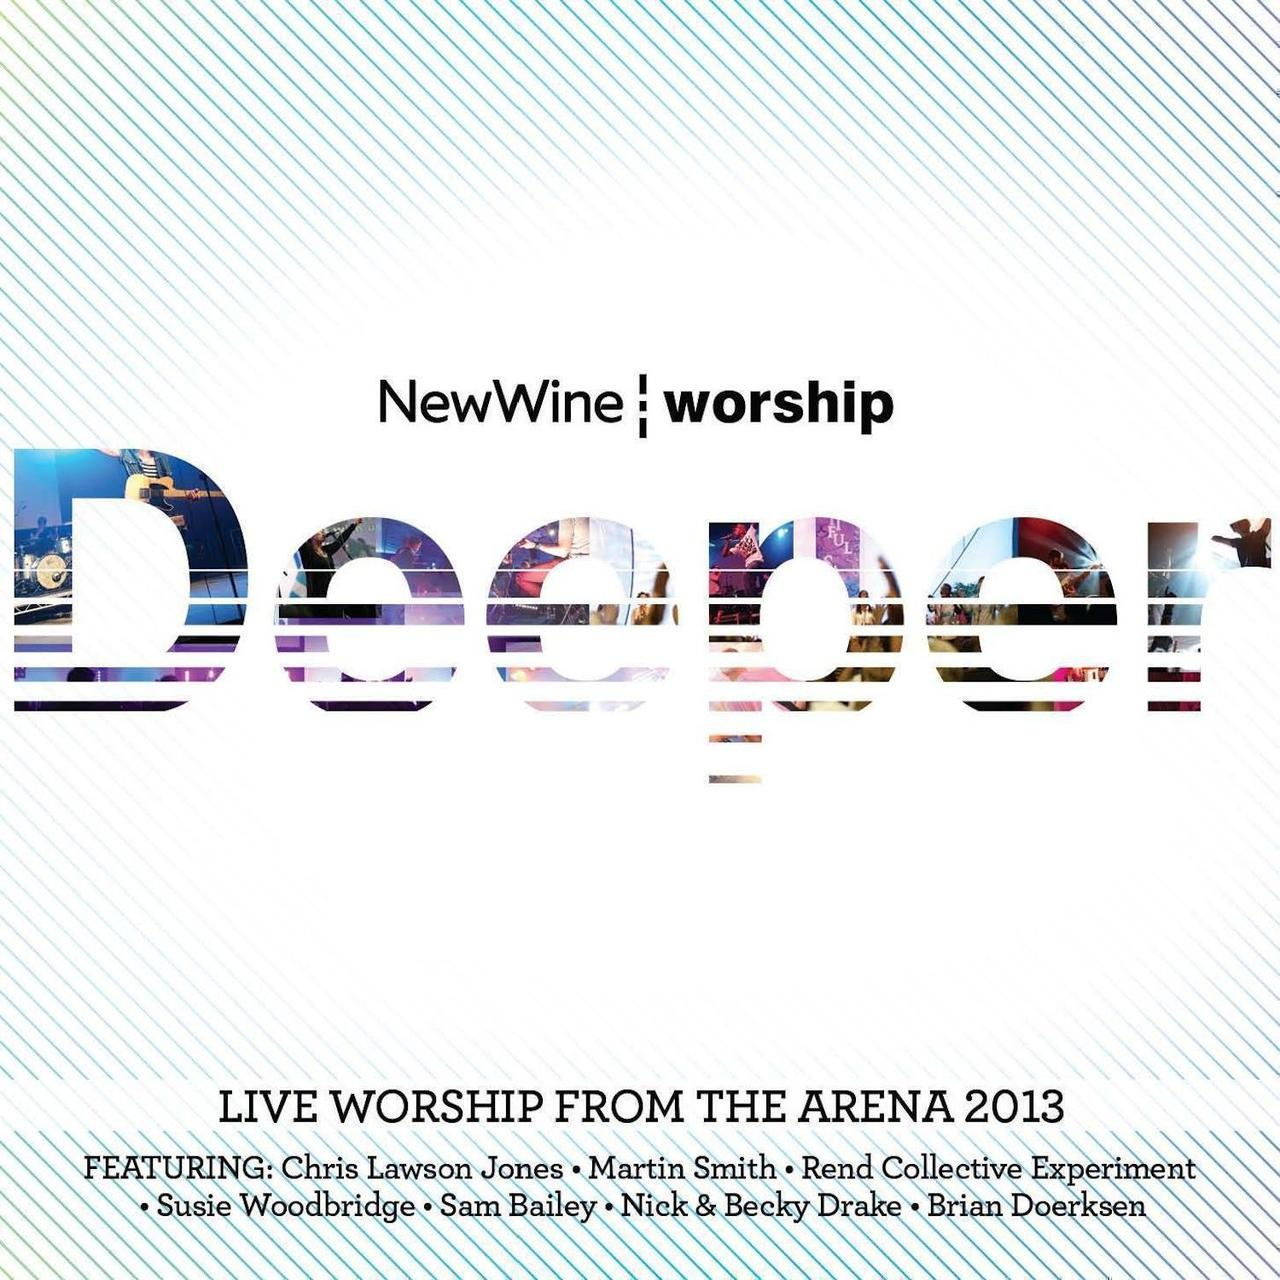 Deeper: Live Worship from the Arena 2013